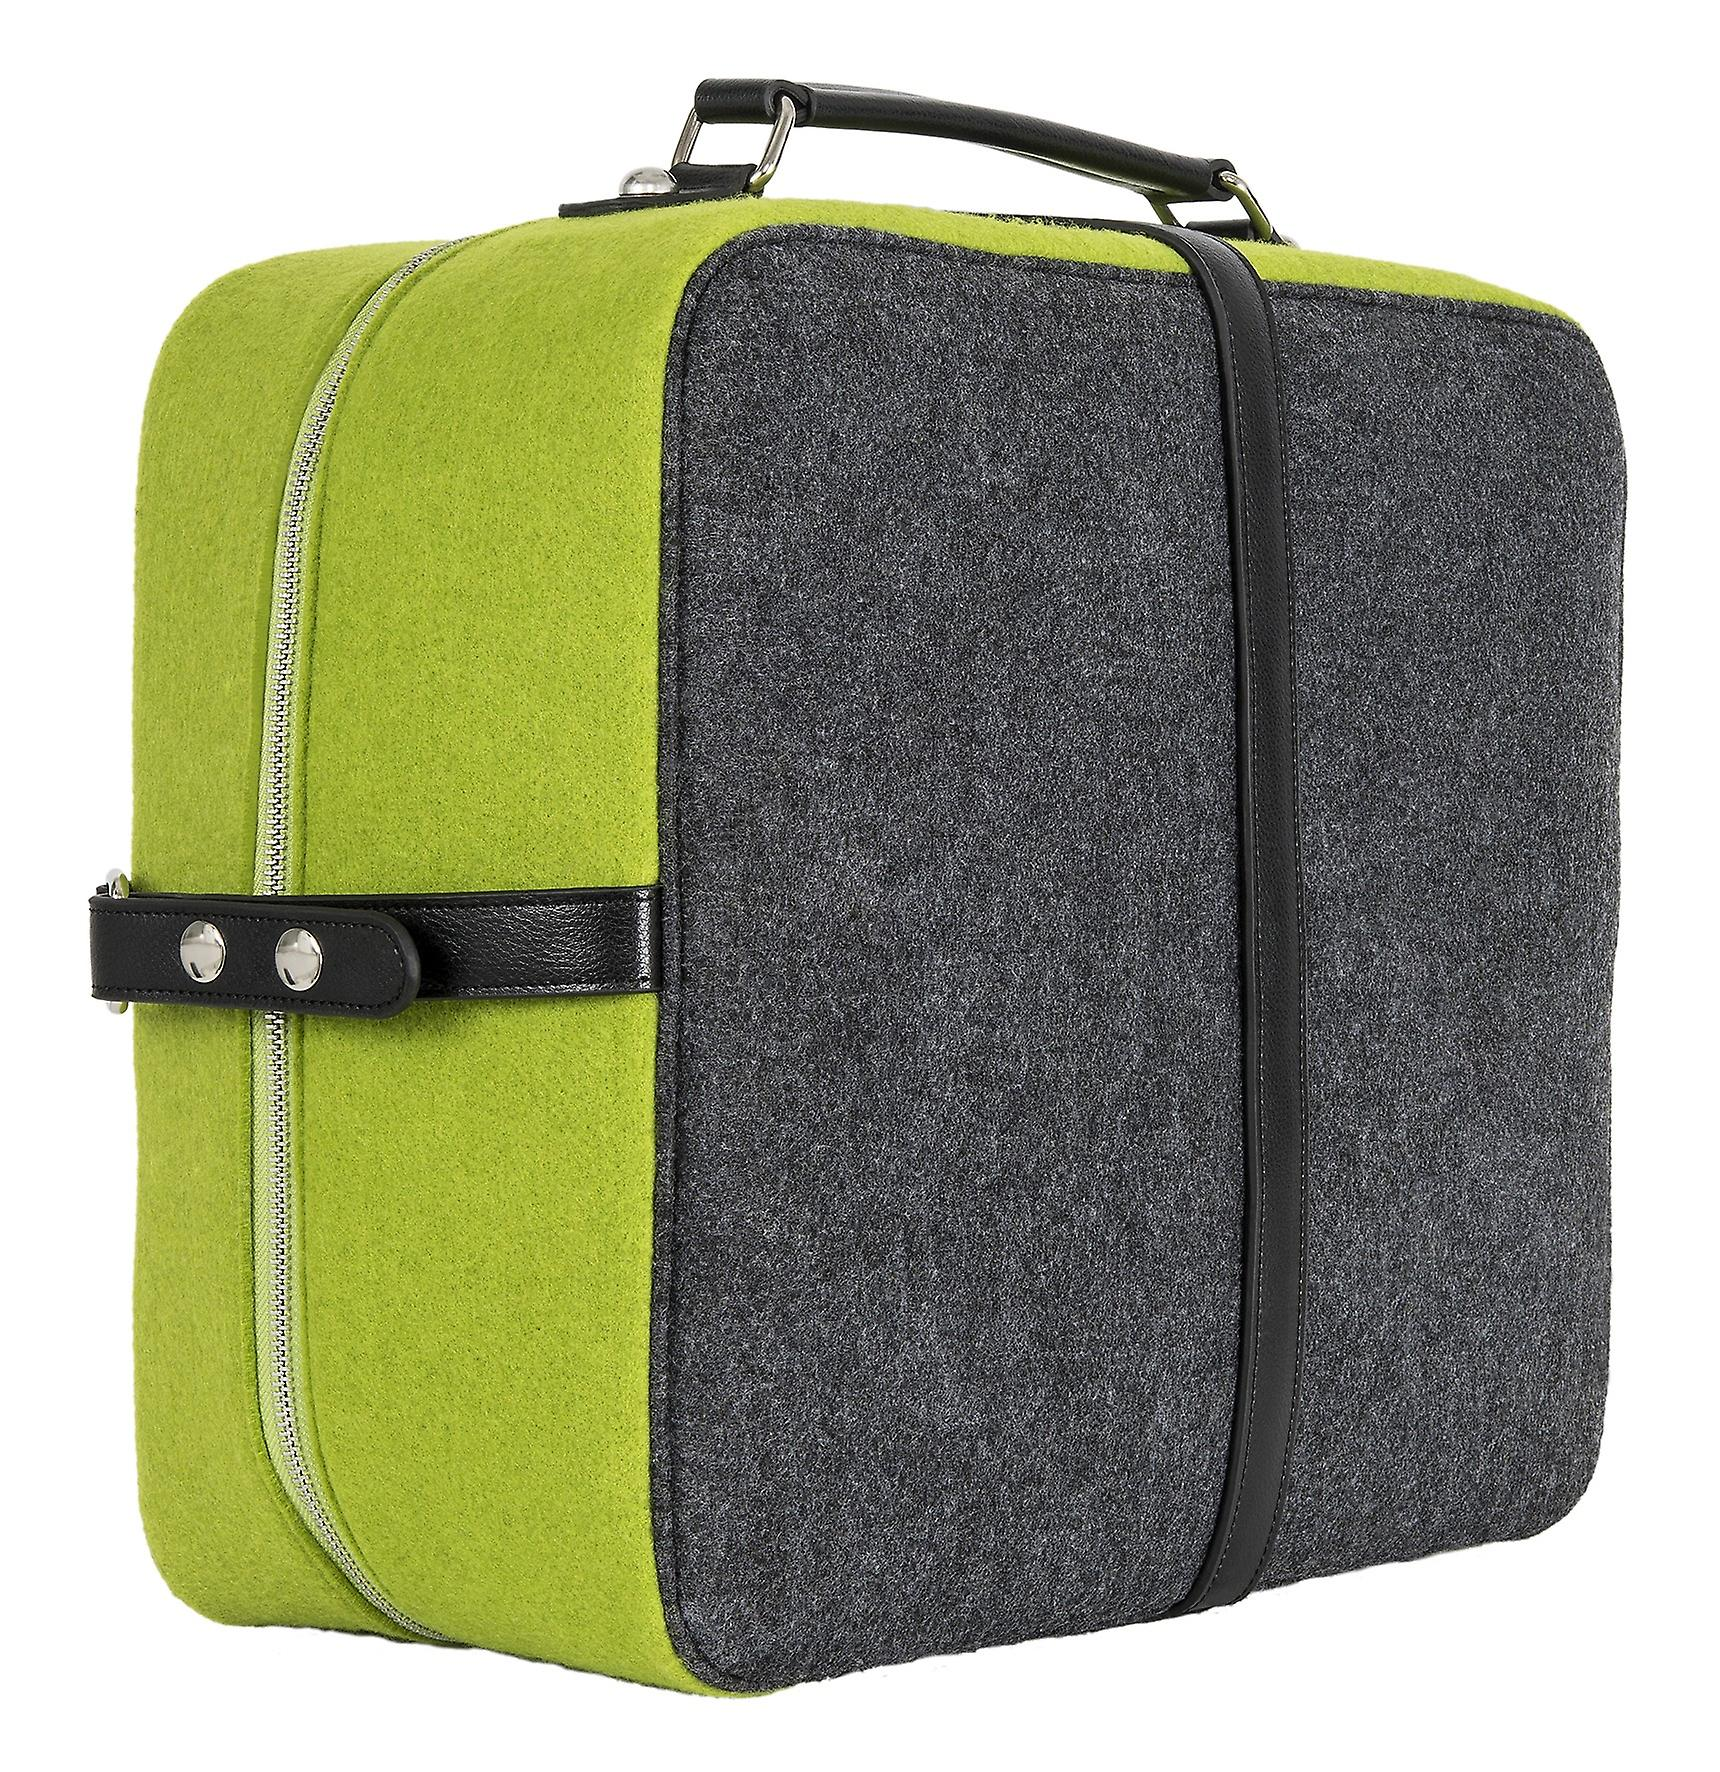 Burgmeister ladies/gents suitcase/weekender felt, TBM3030-168